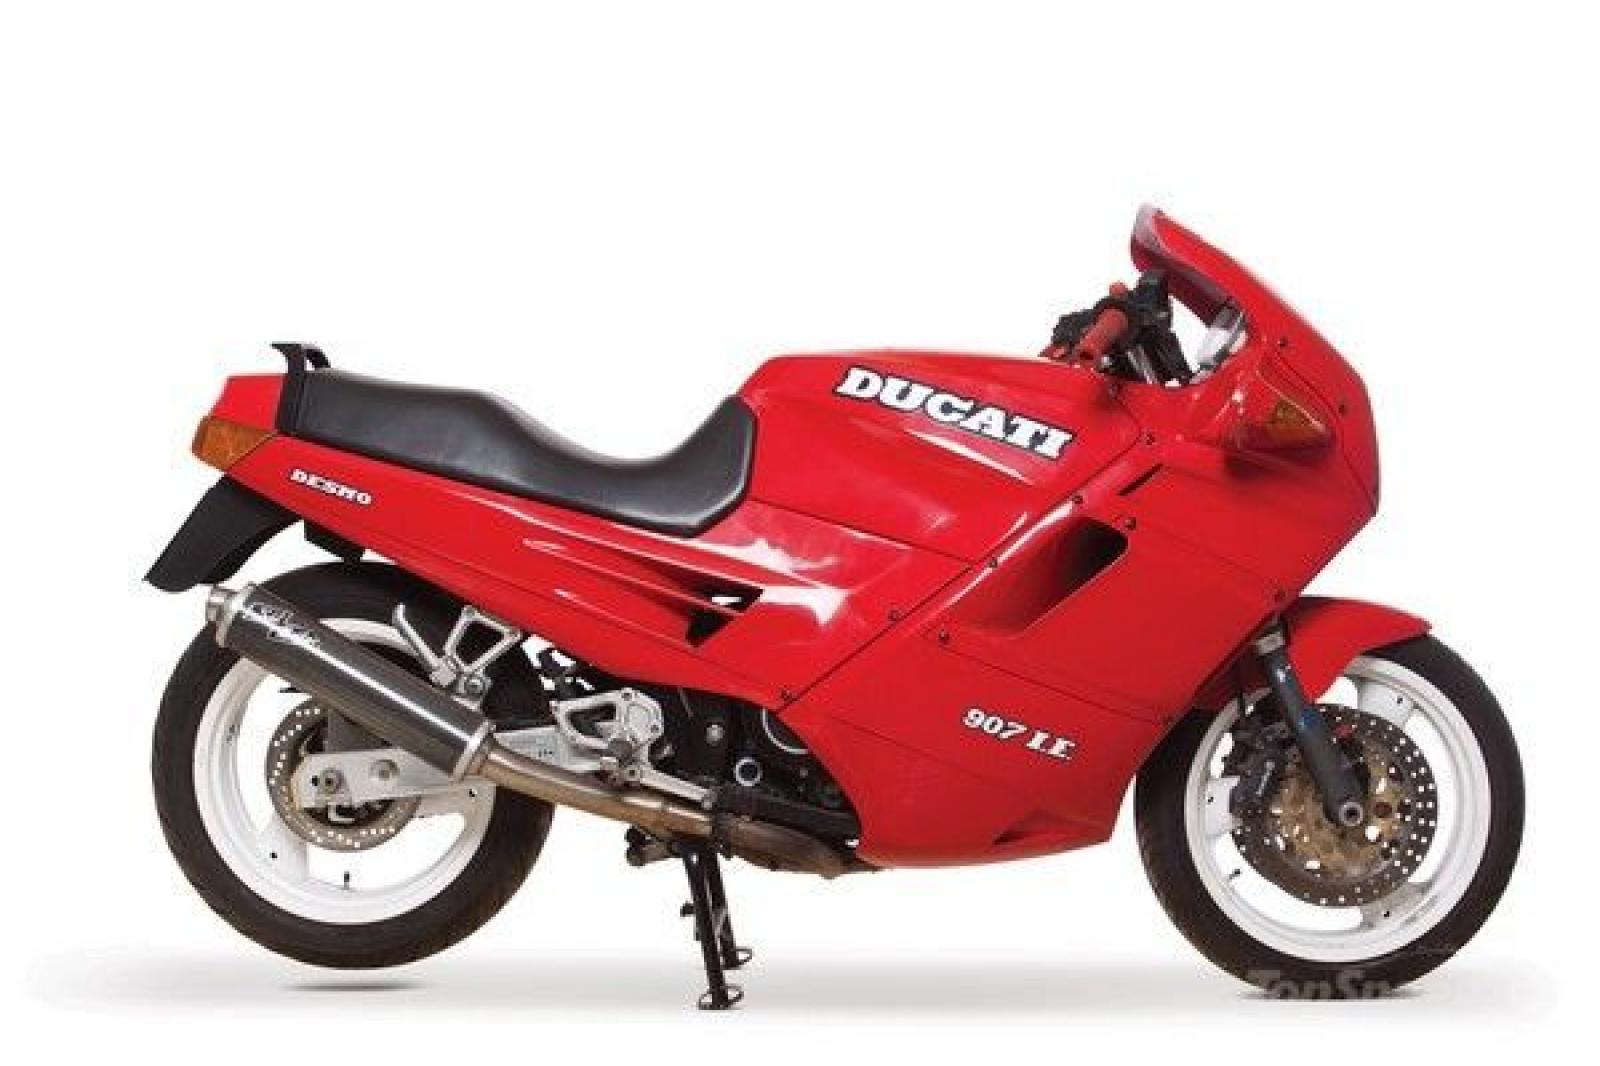 Ducati 907 i.e. wallpapers #168496